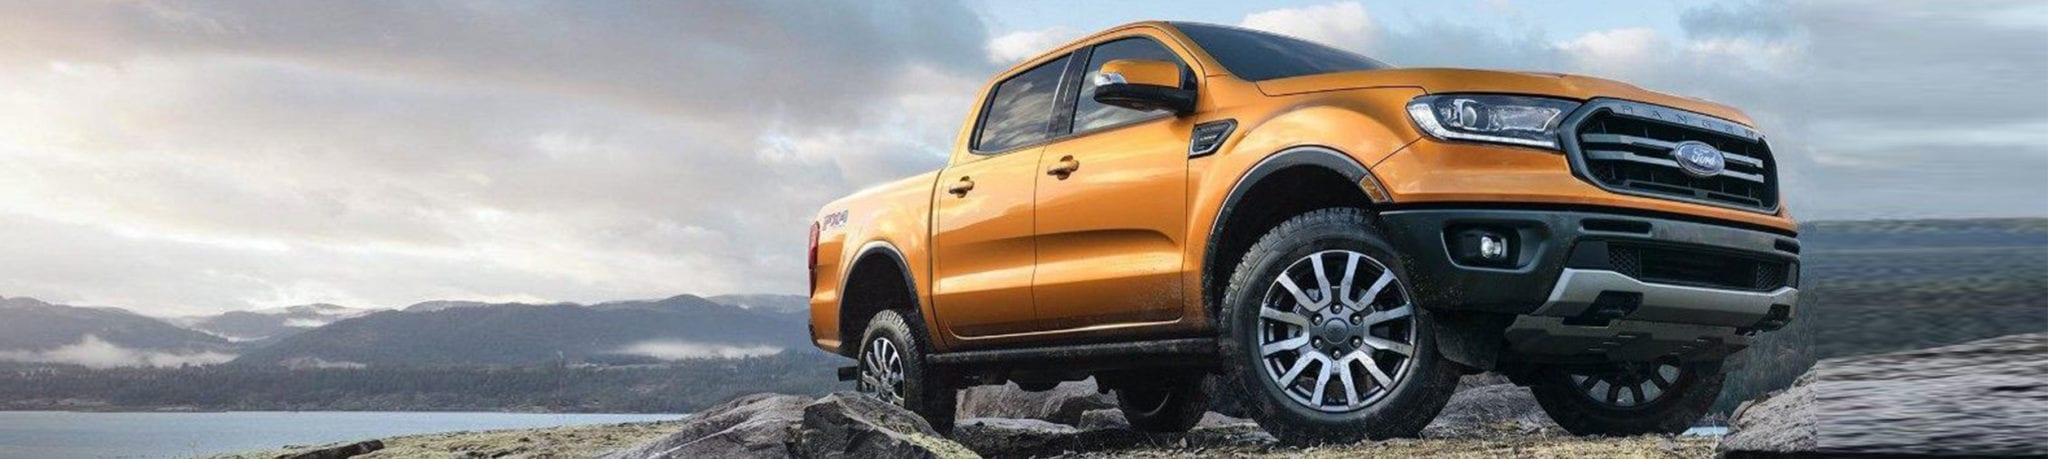 Orange 2019 Ford Ranger on Terrain